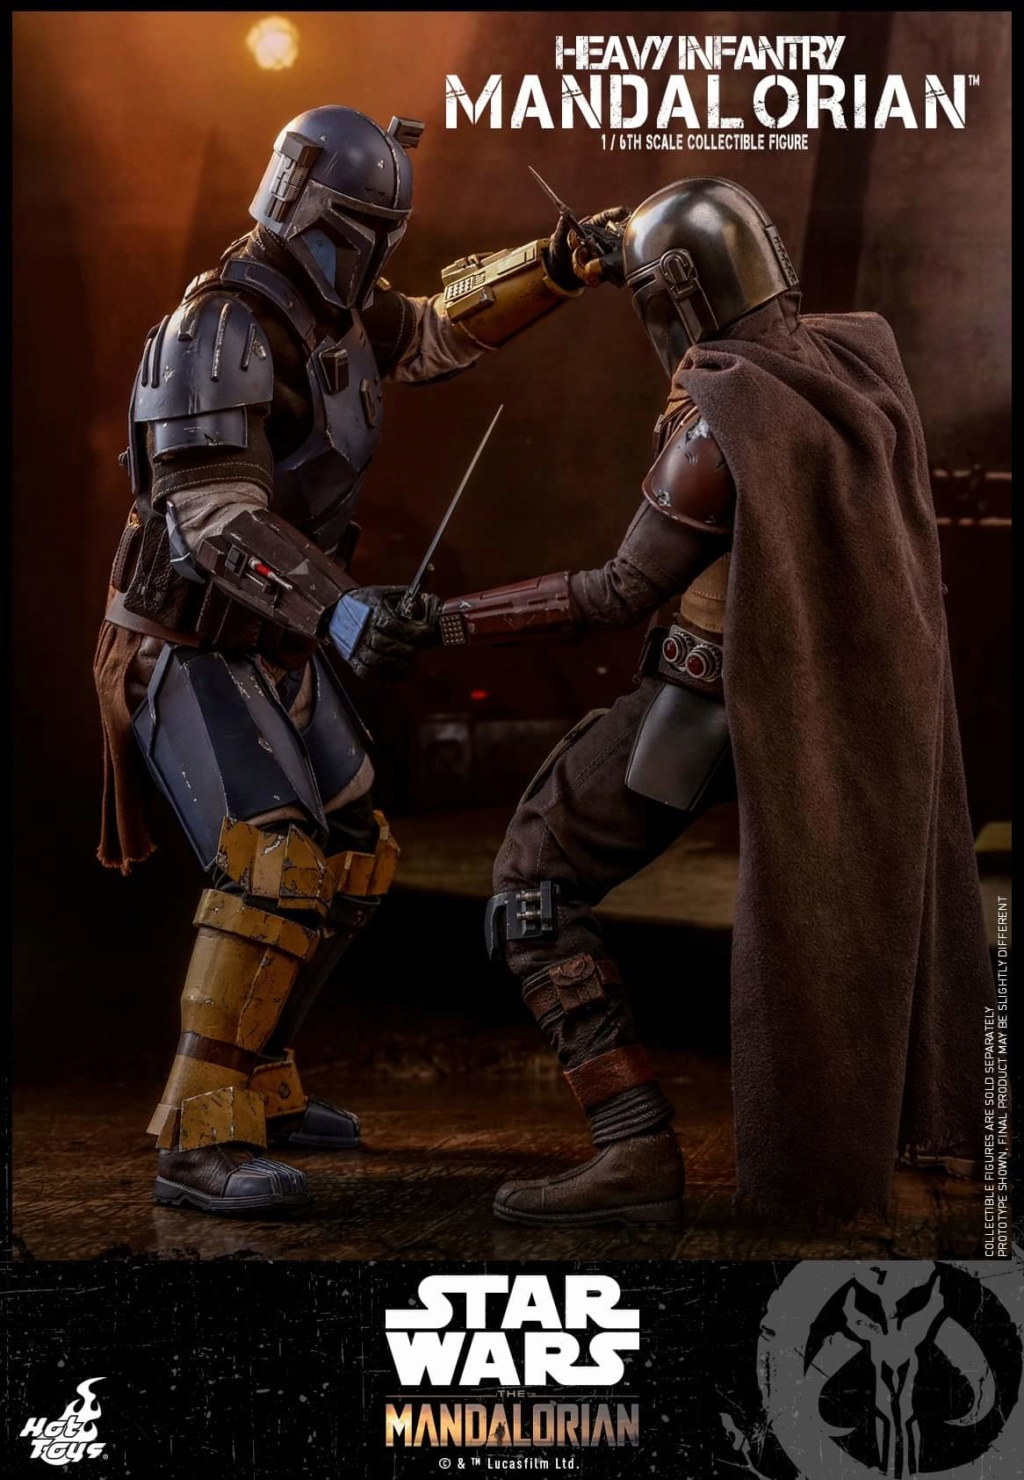 Heavy Infantry Mandalorian Collectible Figure 1/6th Hot Toy. Fb_img64